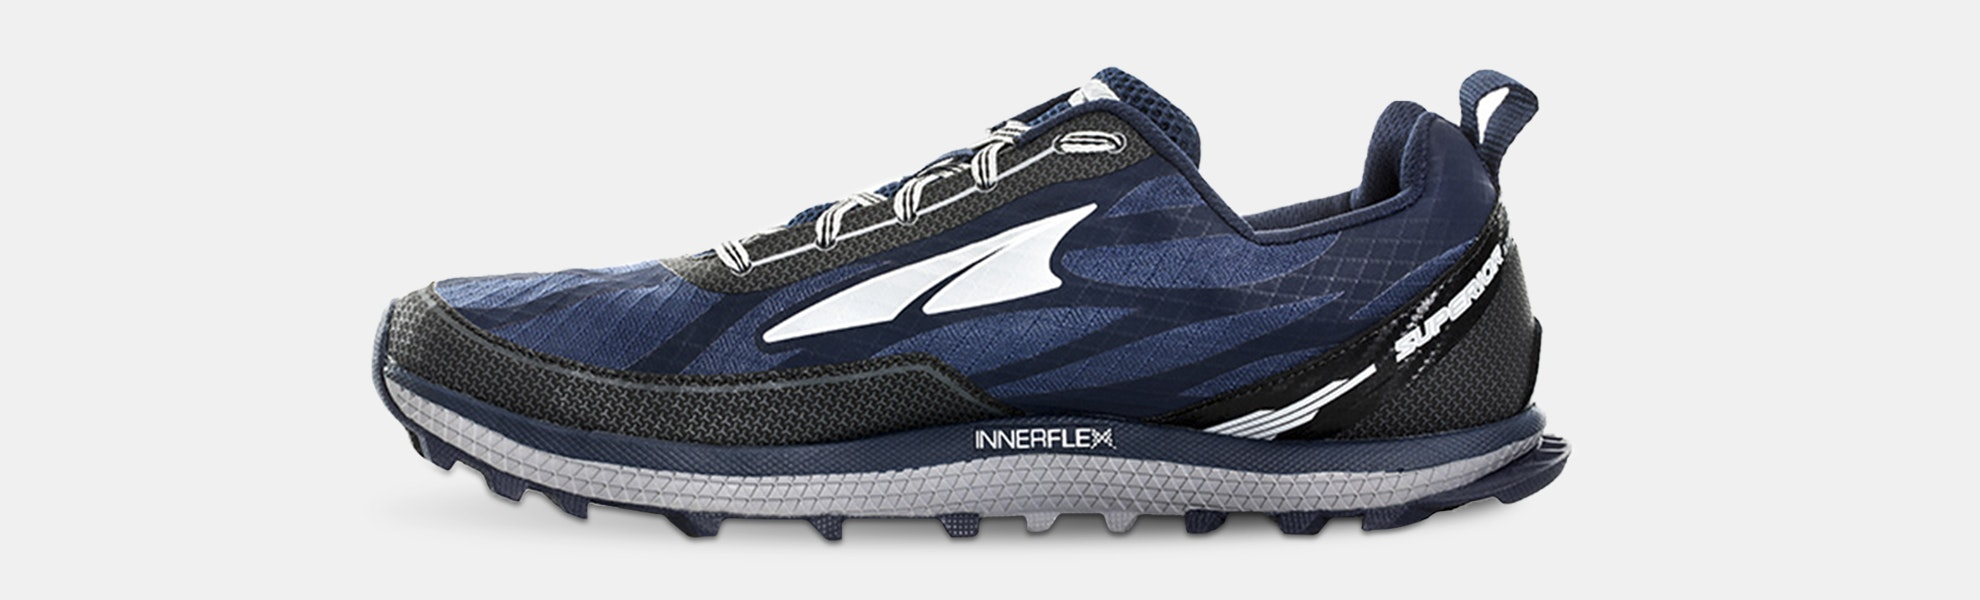 Altra Superior 3.0 Running Shoes